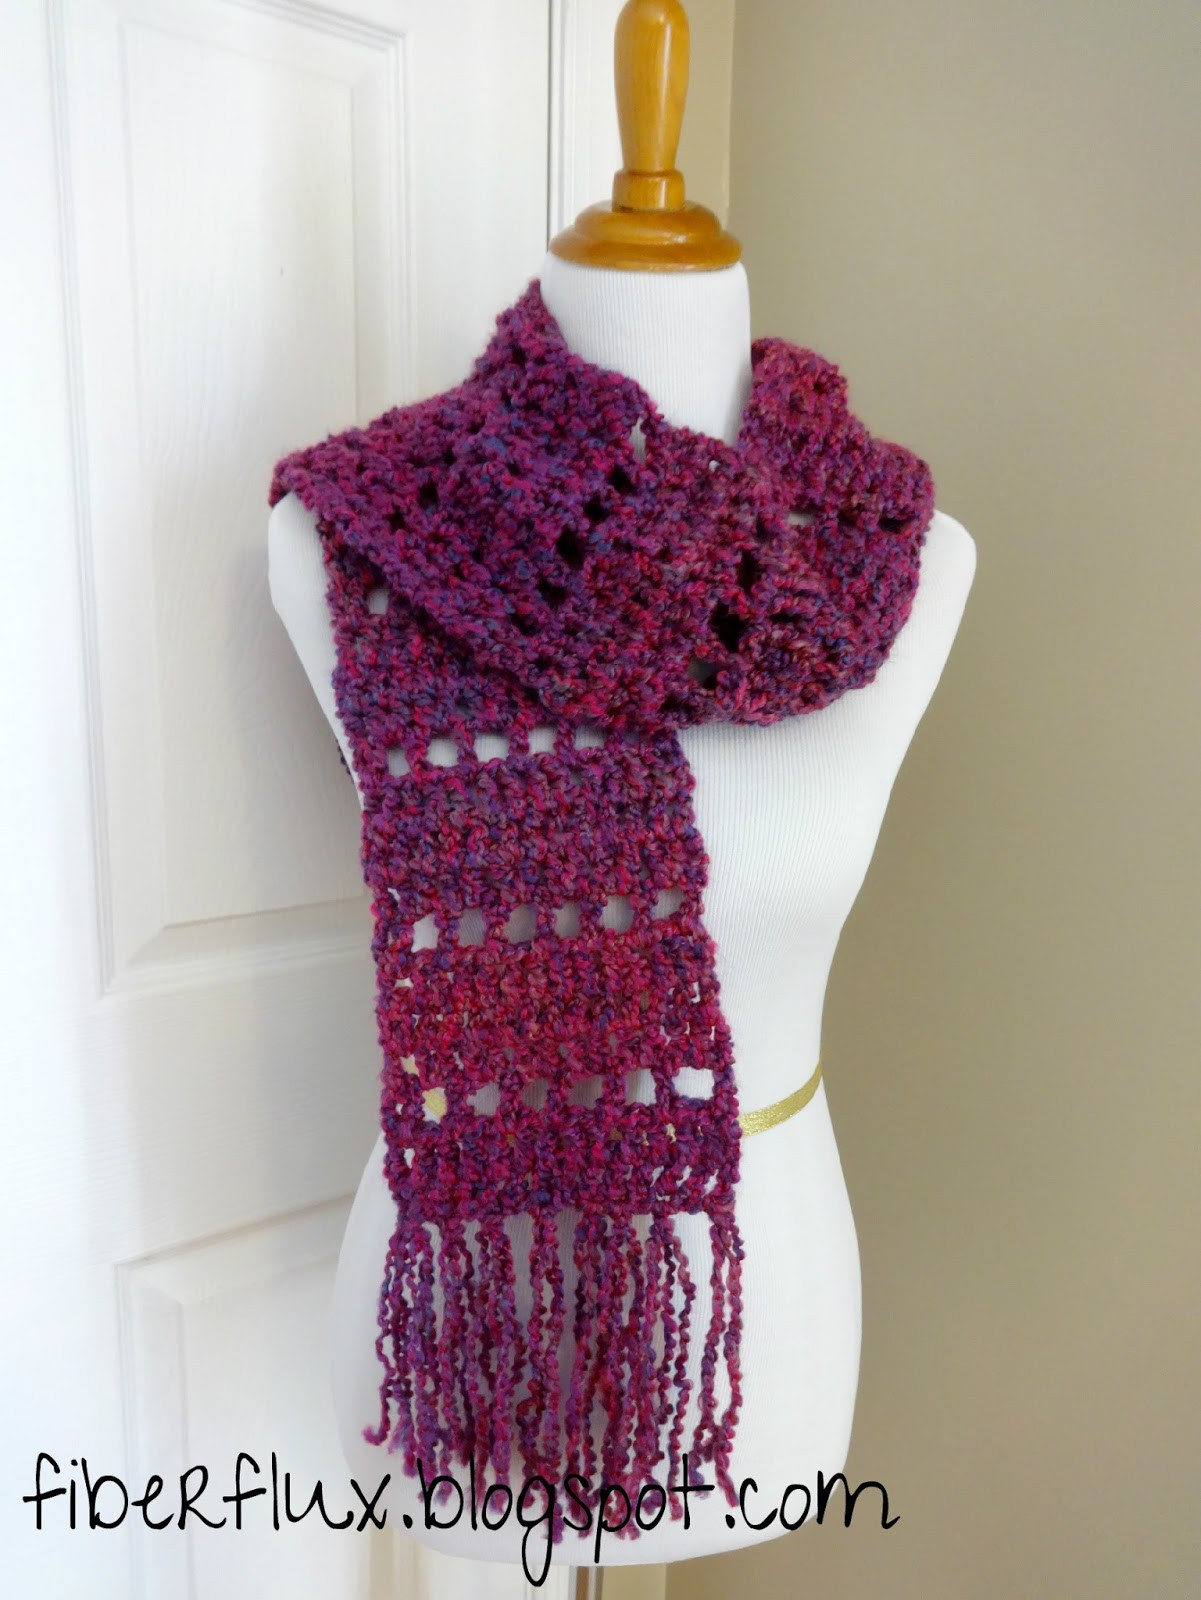 Crochet Scarf Patterns Unique Fiber Flux Free Crochet Pattern Mulberry Scarf Of Charming 49 Models Crochet Scarf Patterns